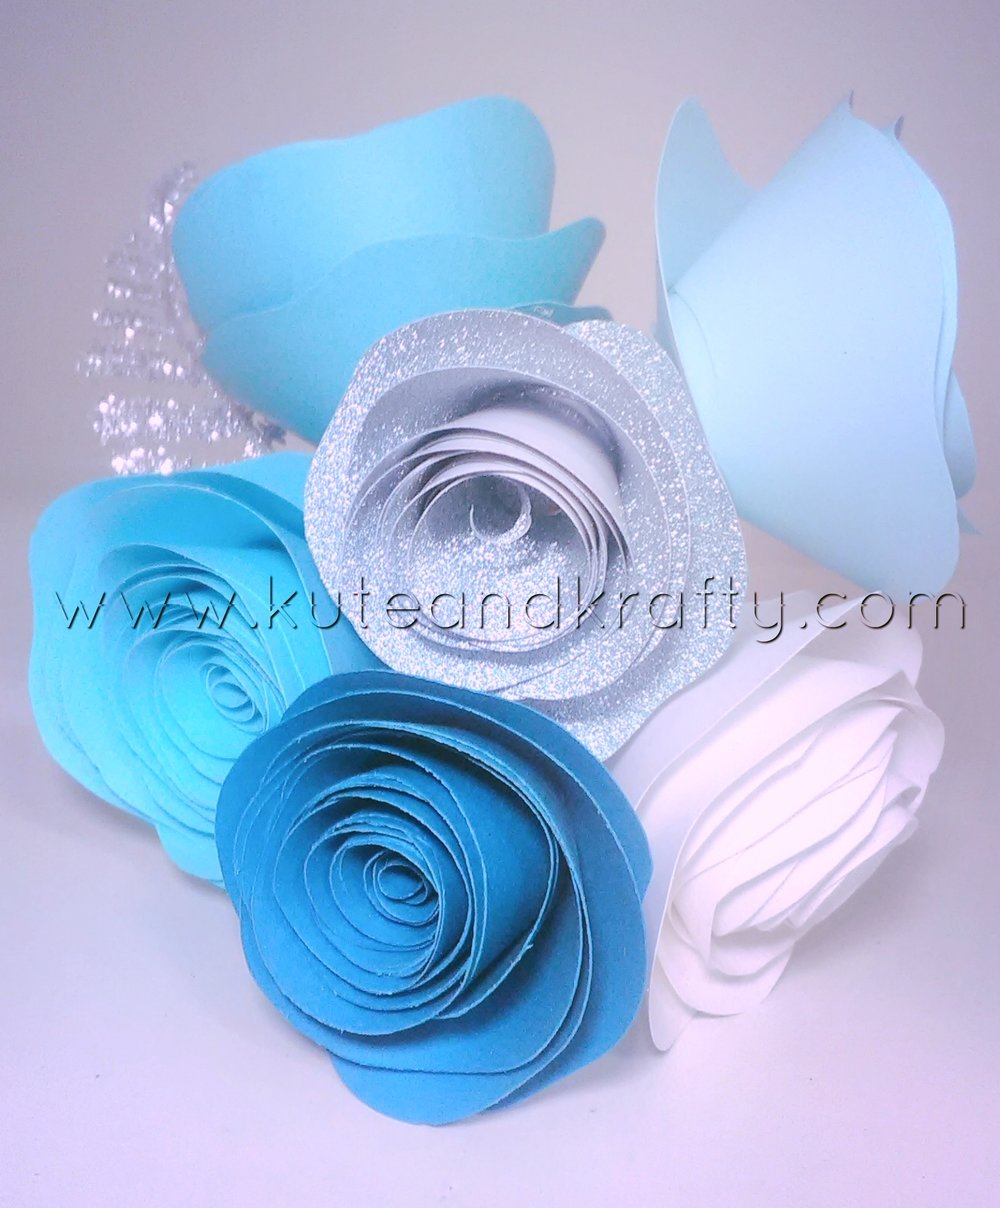 Small Blues Bouquet.jpg